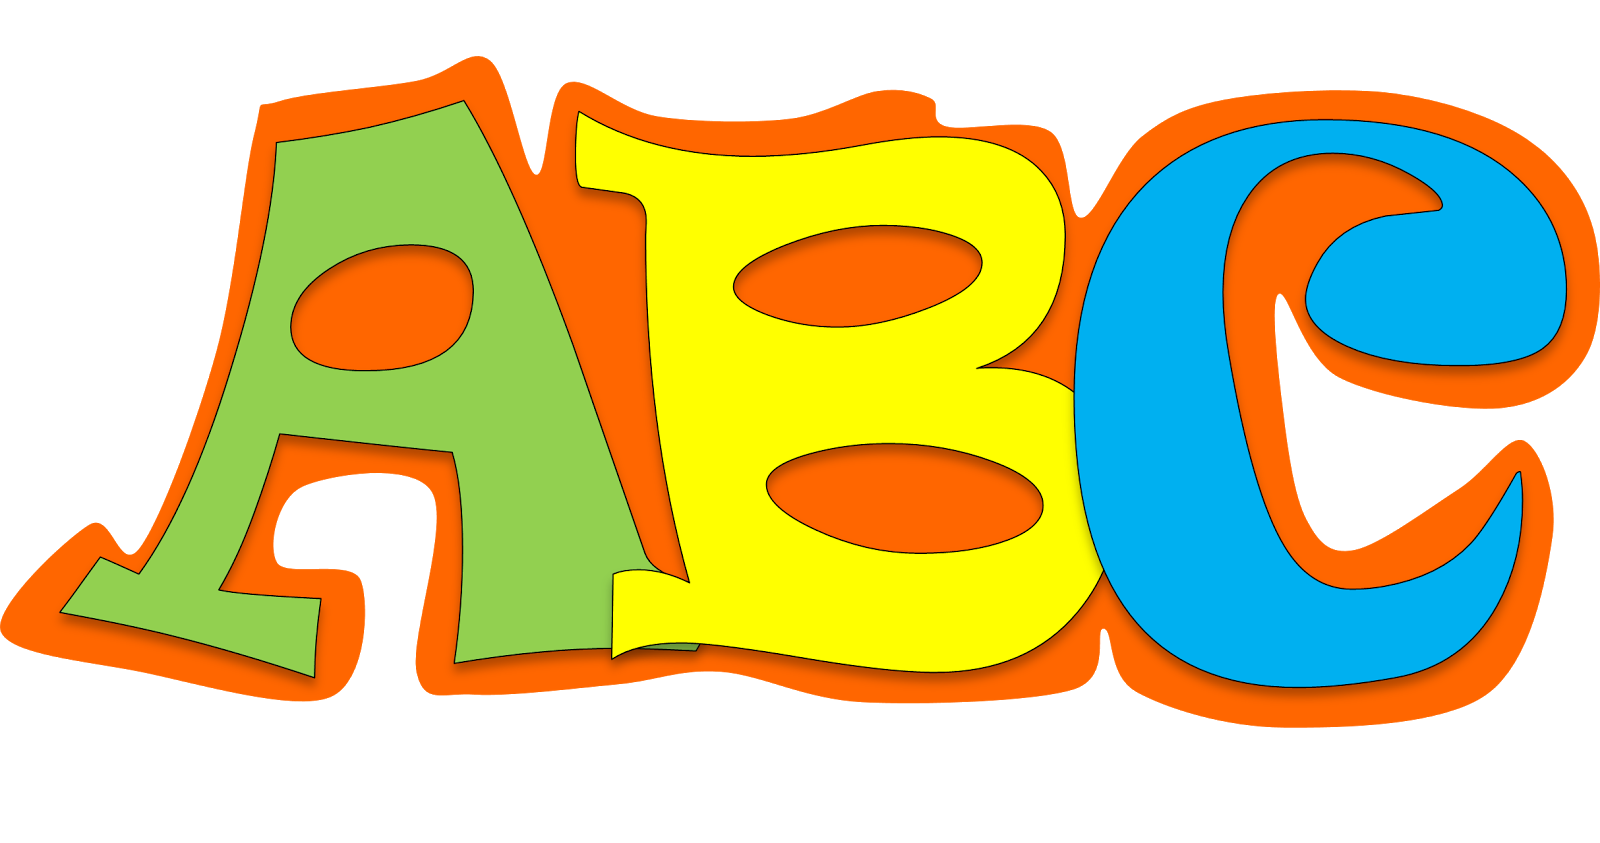 abc clipart at getdrawings com free for personal use abc clipart rh getdrawings com abc clip art free abc clipart black and white